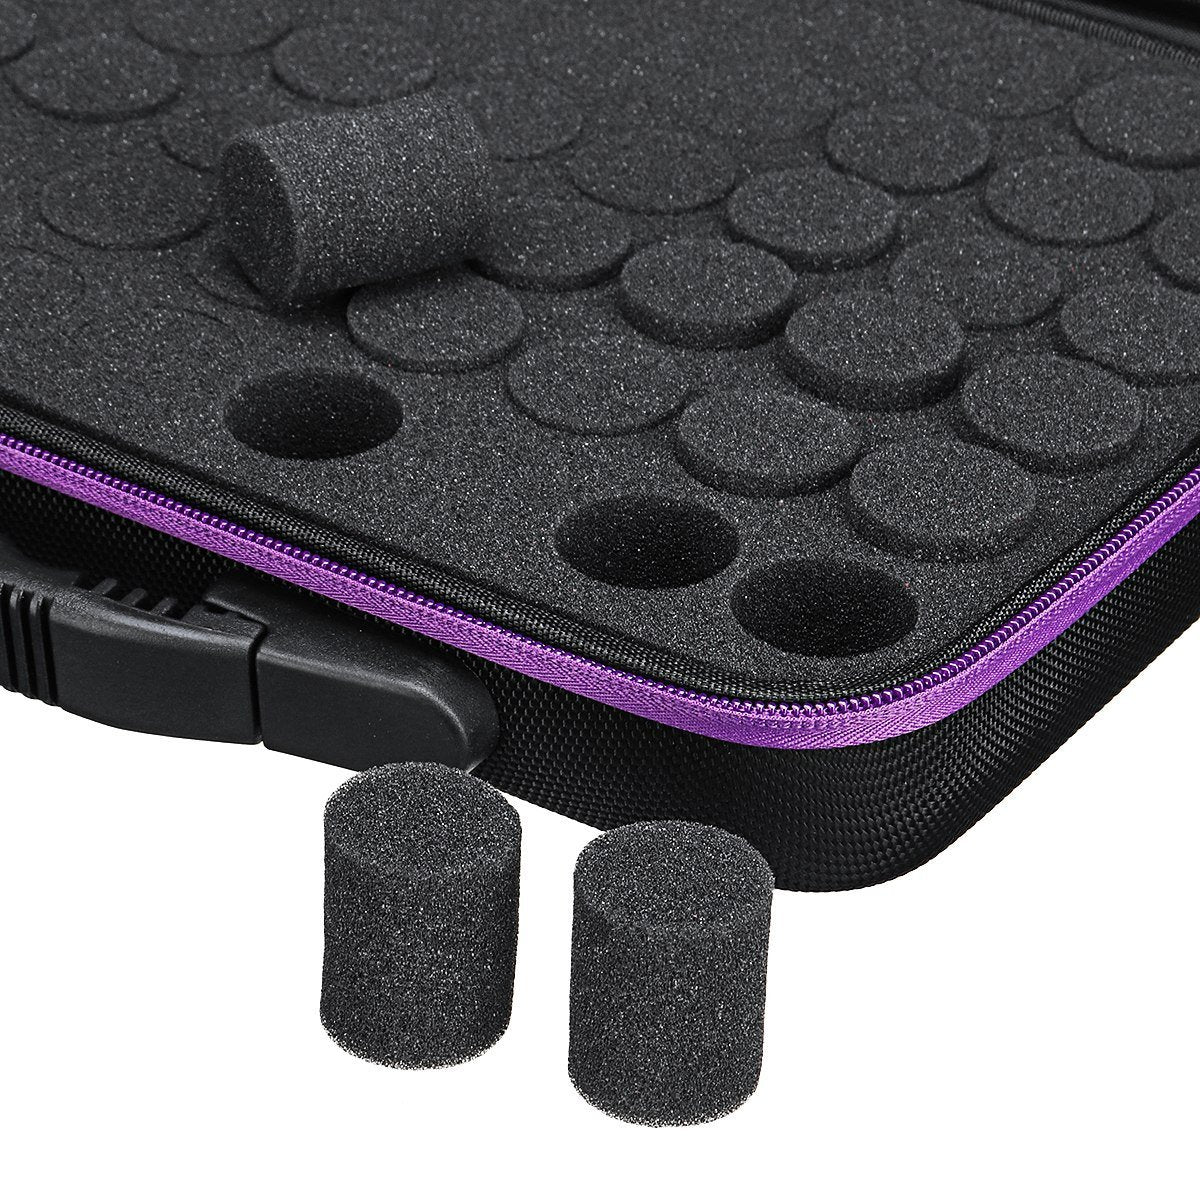 60 Slot Essential Oil Storage Case for 15 mL Bottles